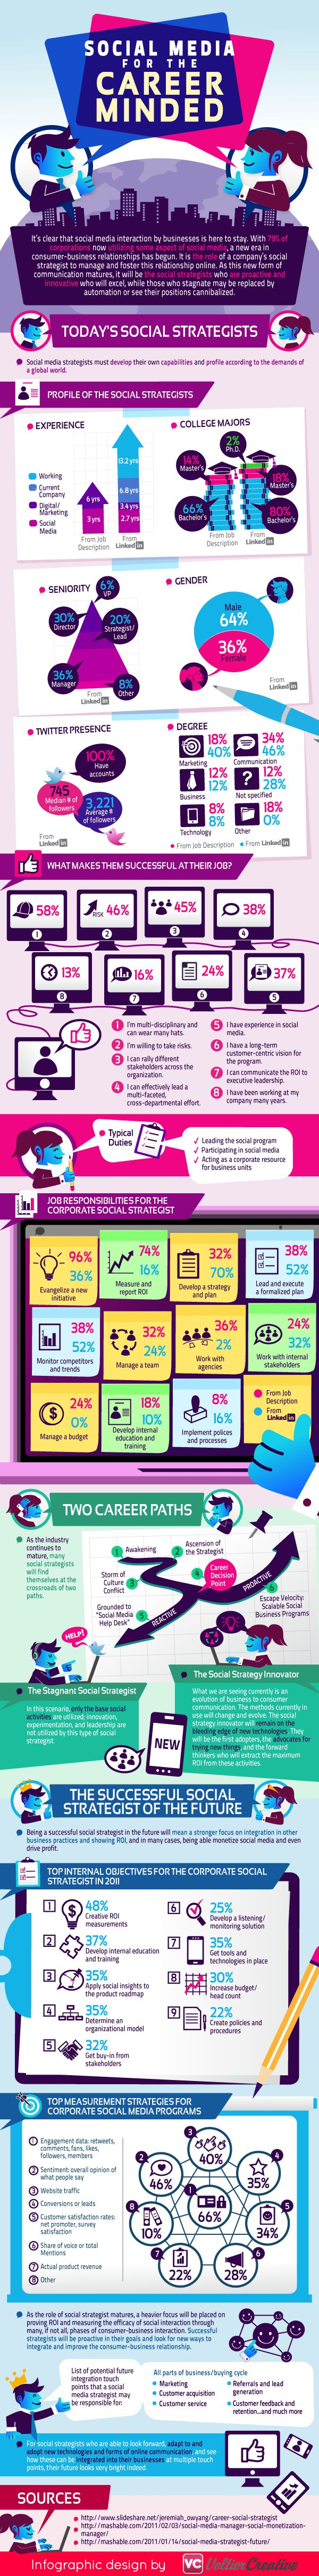 Being a Social Strategist - what does it take #infographic